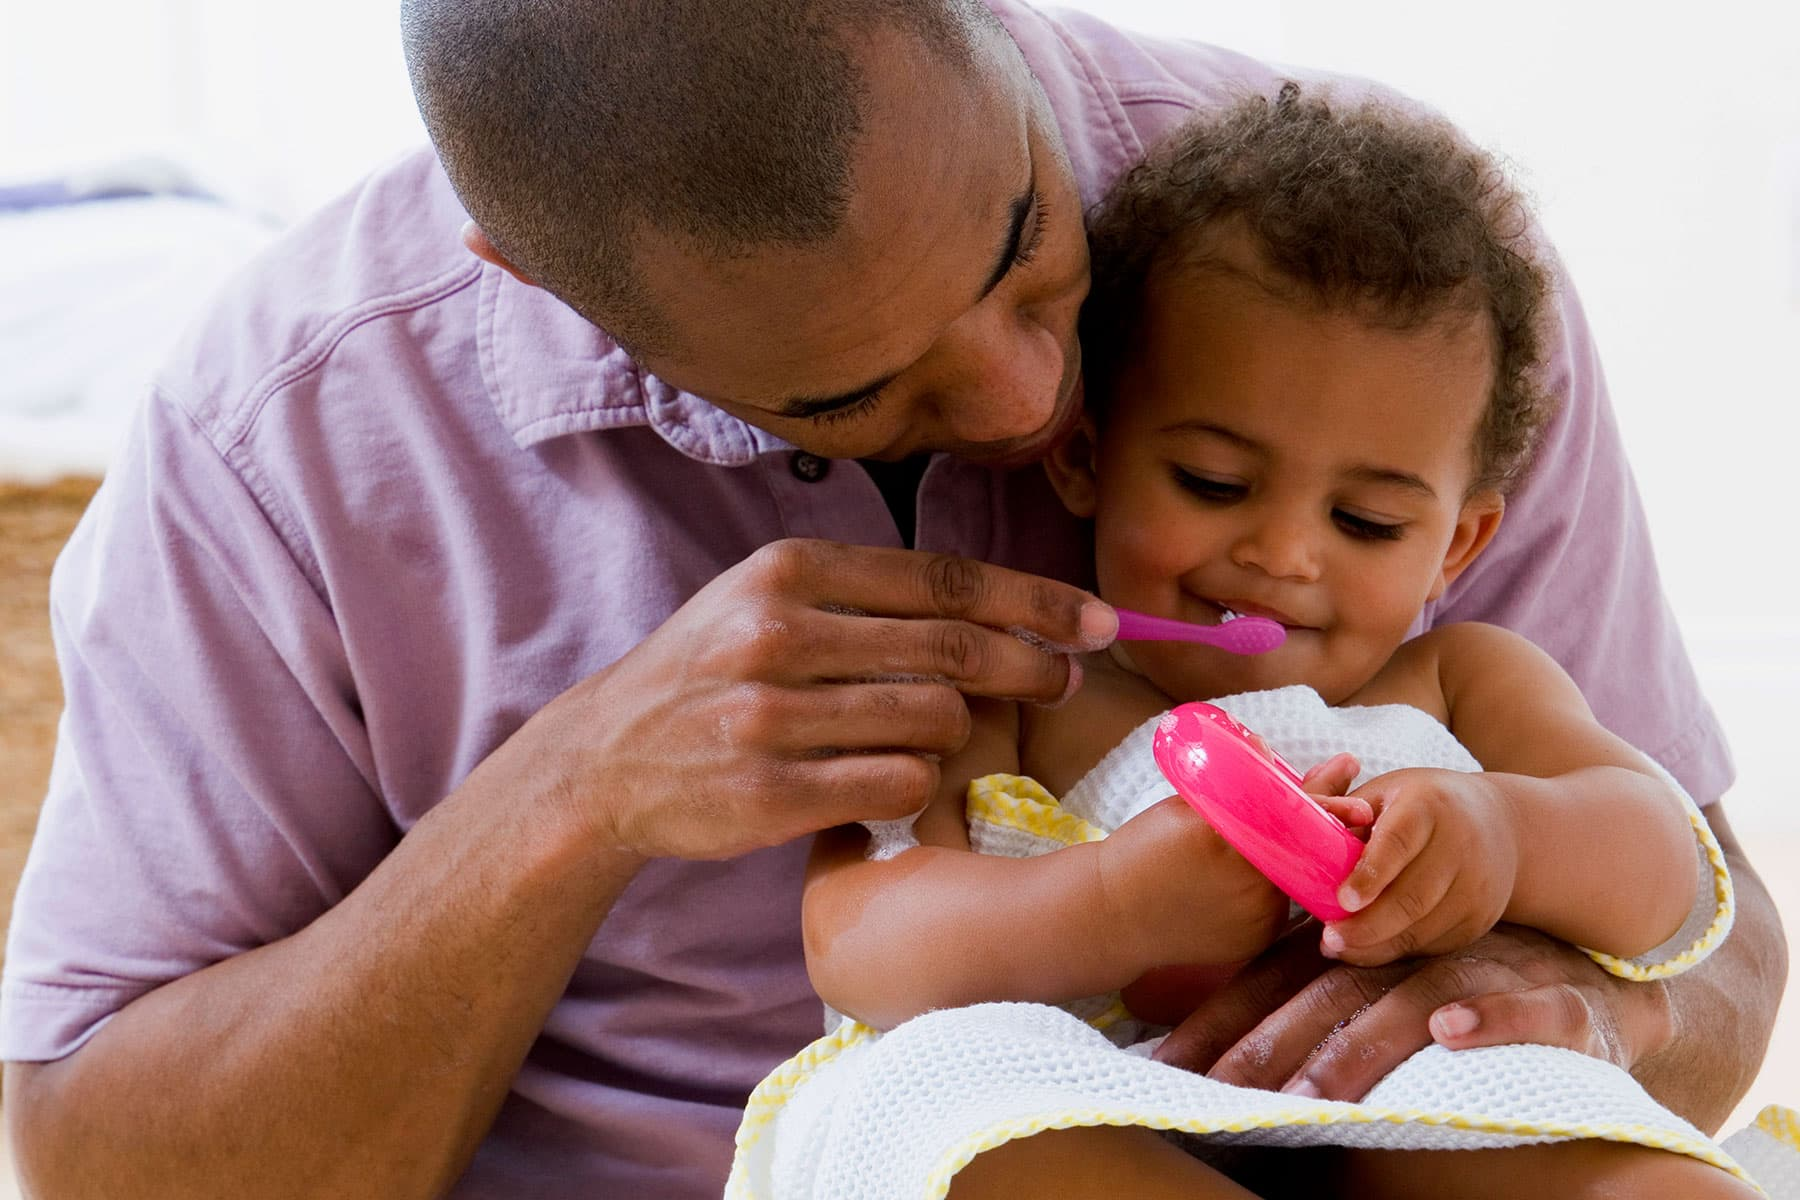 Baby Teeth Care: Brushing First Teeth, Teething, Gum Care, and More